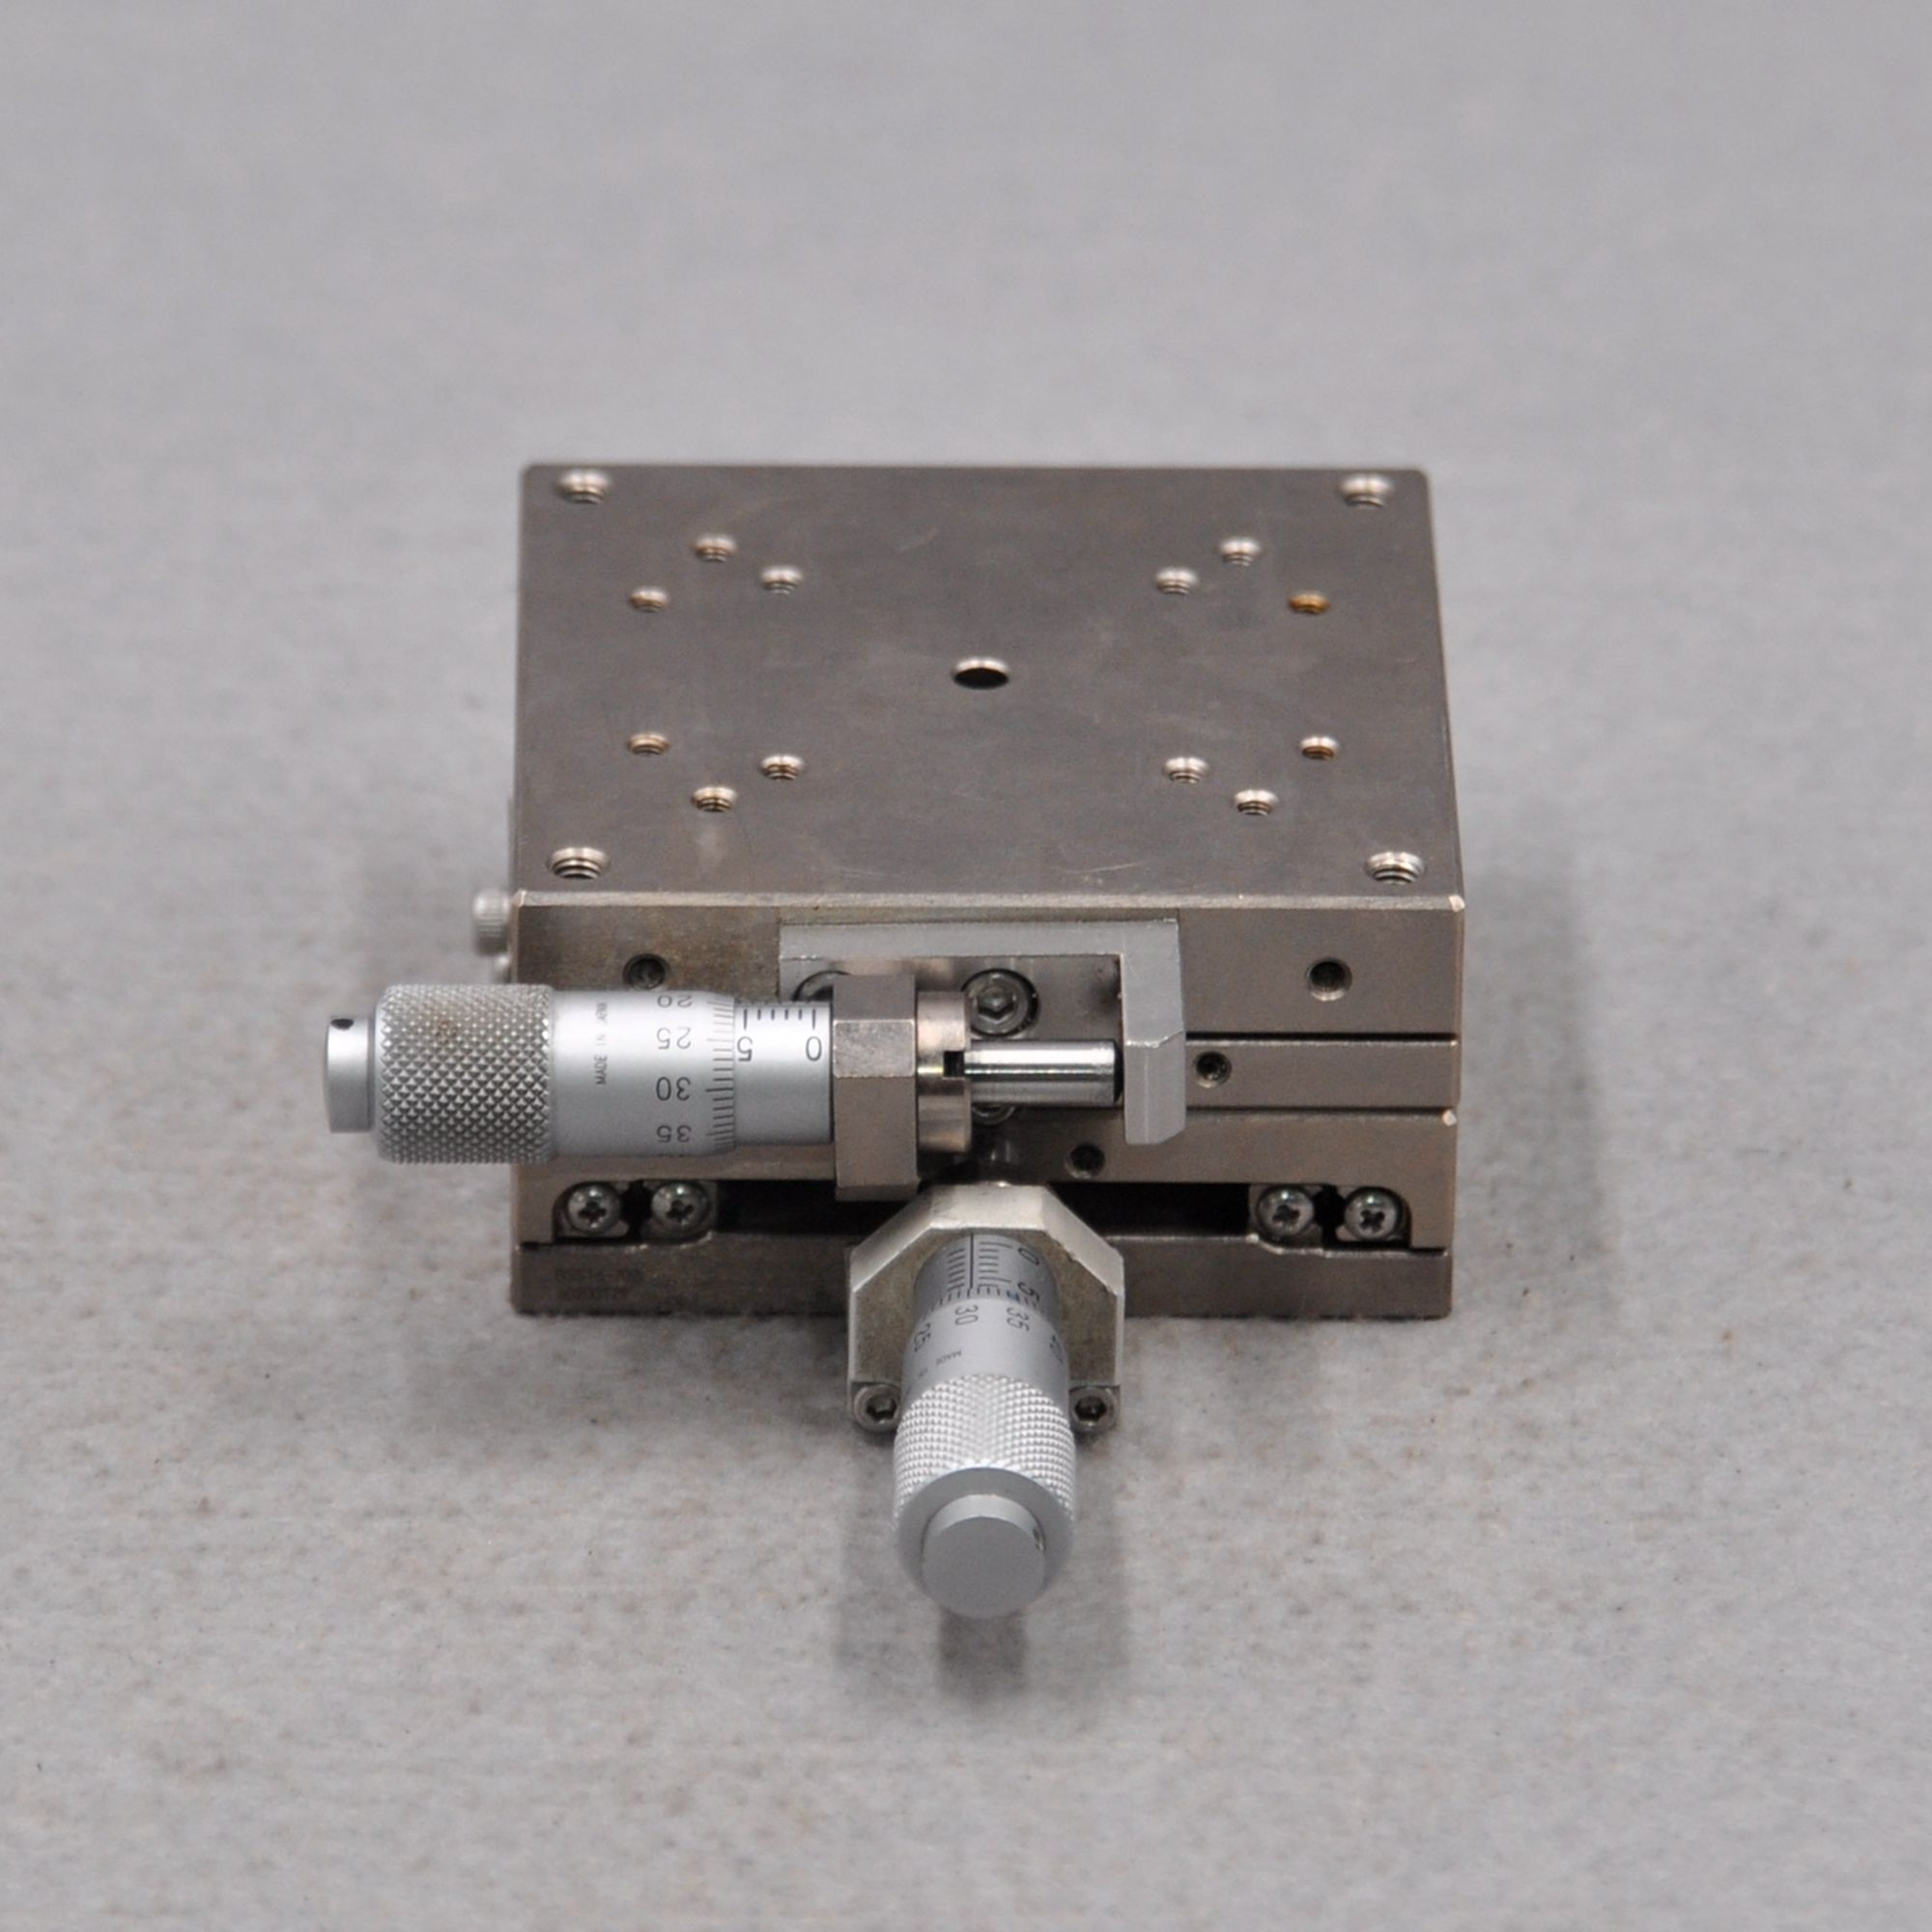 BSS16-70CR BSS16-70A SURUGA SEIKI optical manual XY axis precision cross roller guide rail displacement slide enlarge